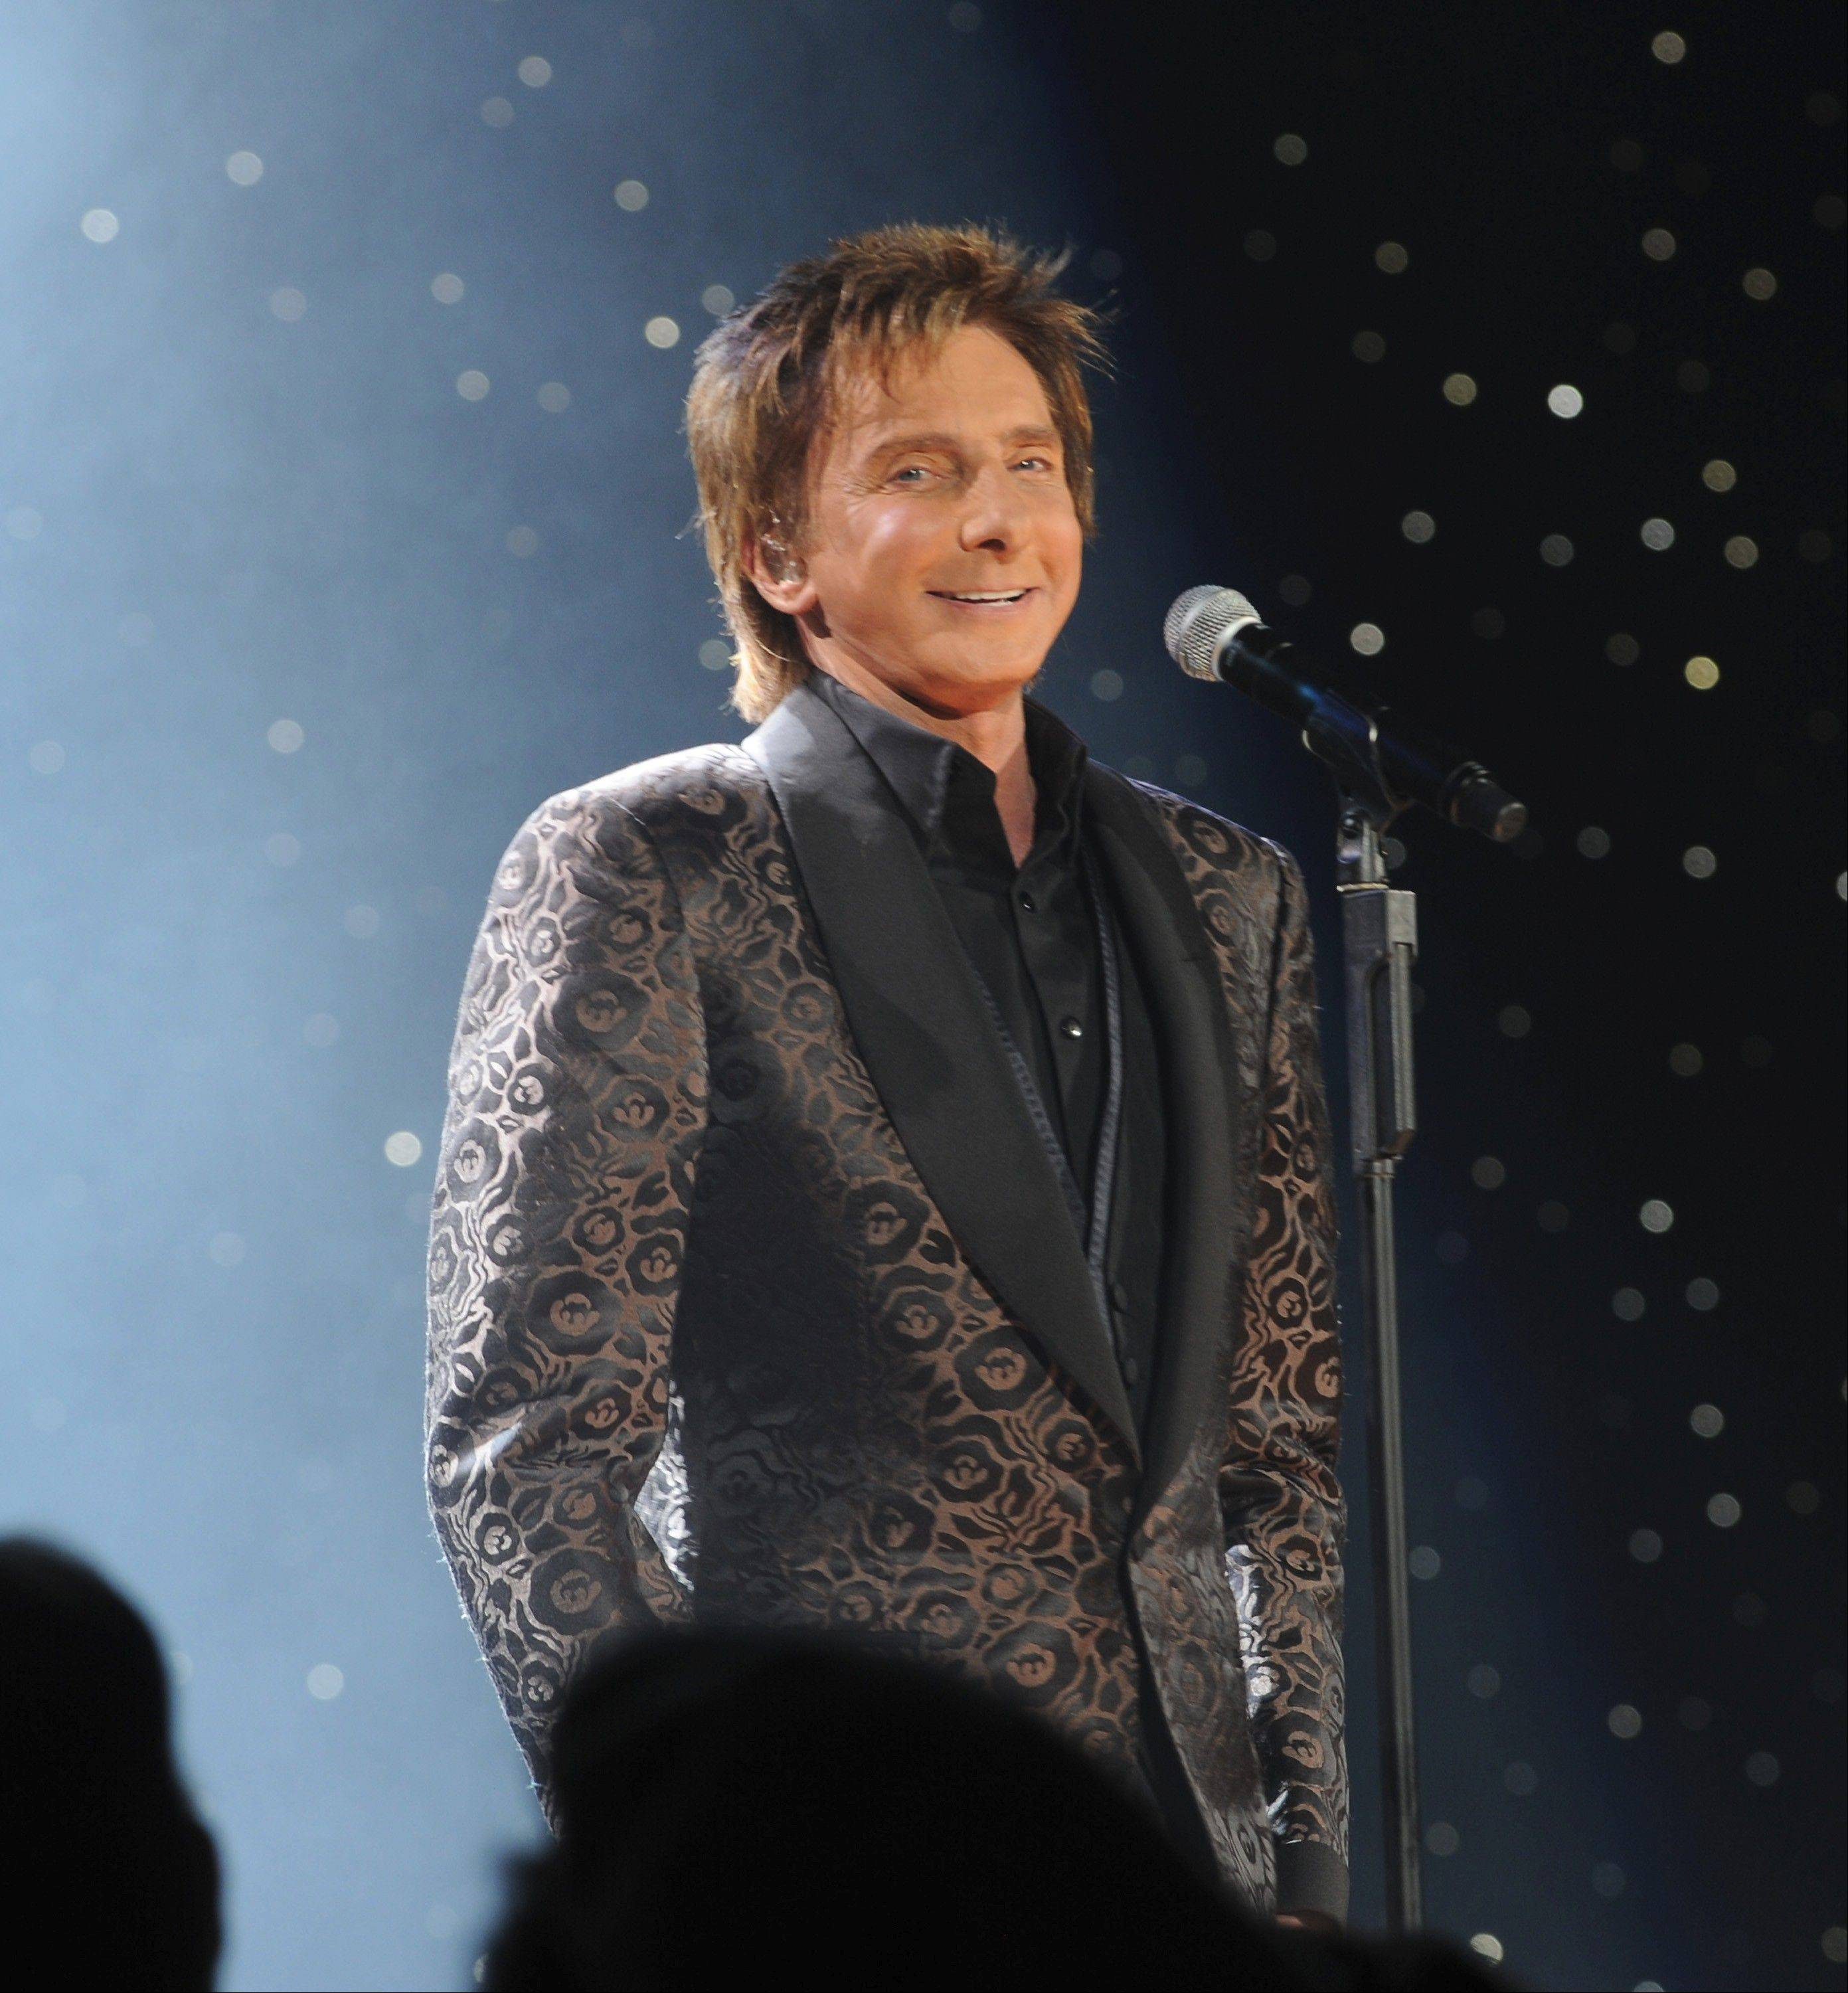 Barry Manilow will play �A Capitol Fourth� in Washington on Thursday. The show will be broadcast live on PBS.